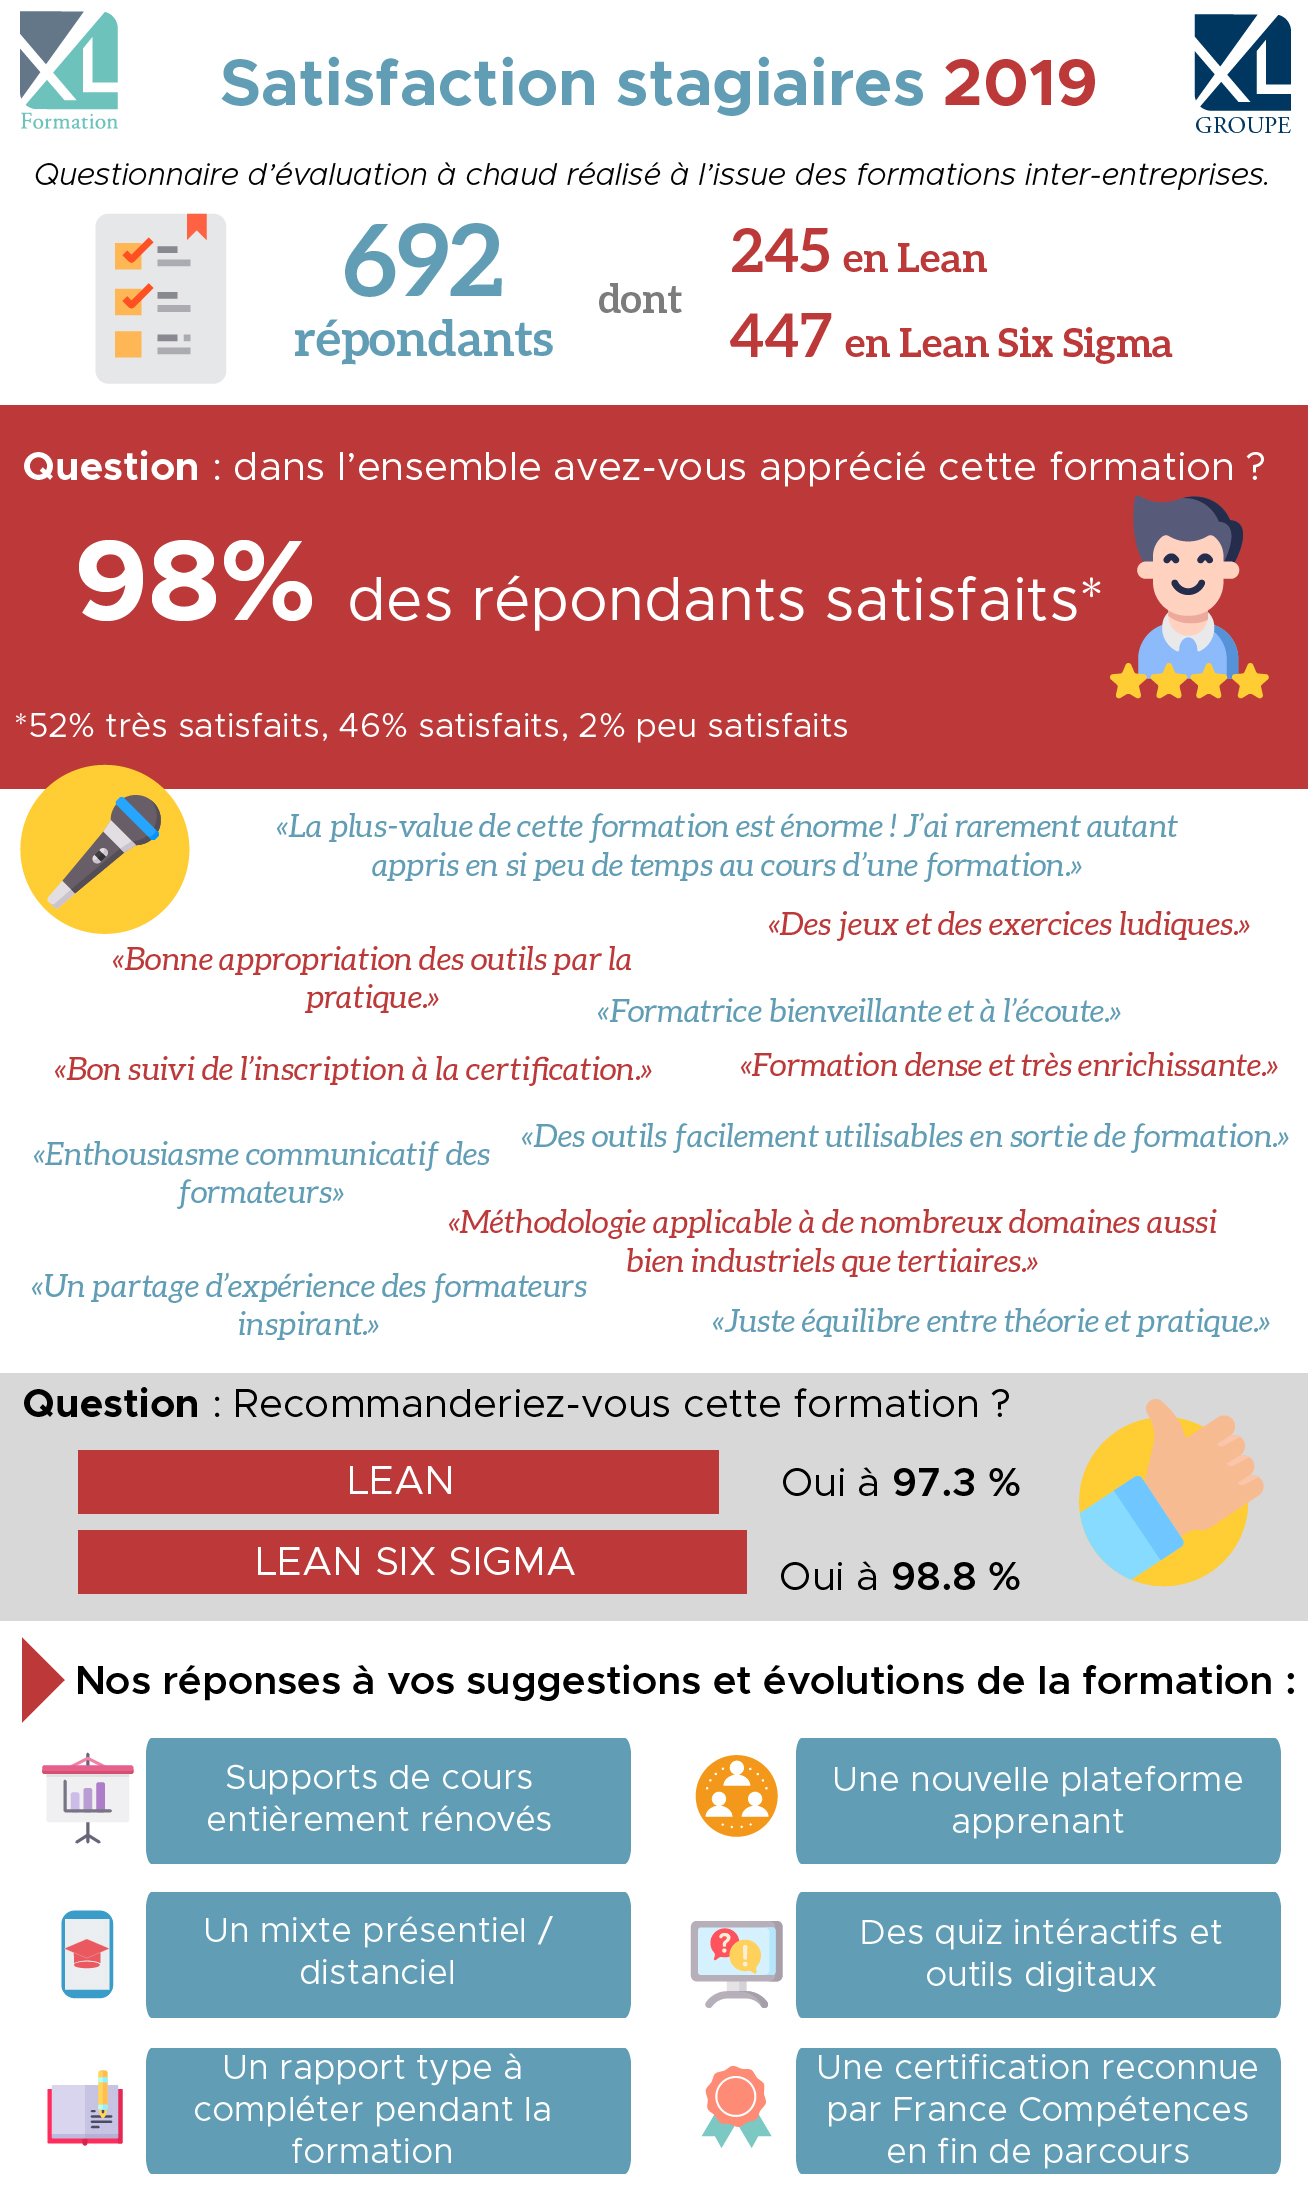 Infographie satisfaction stagiaires